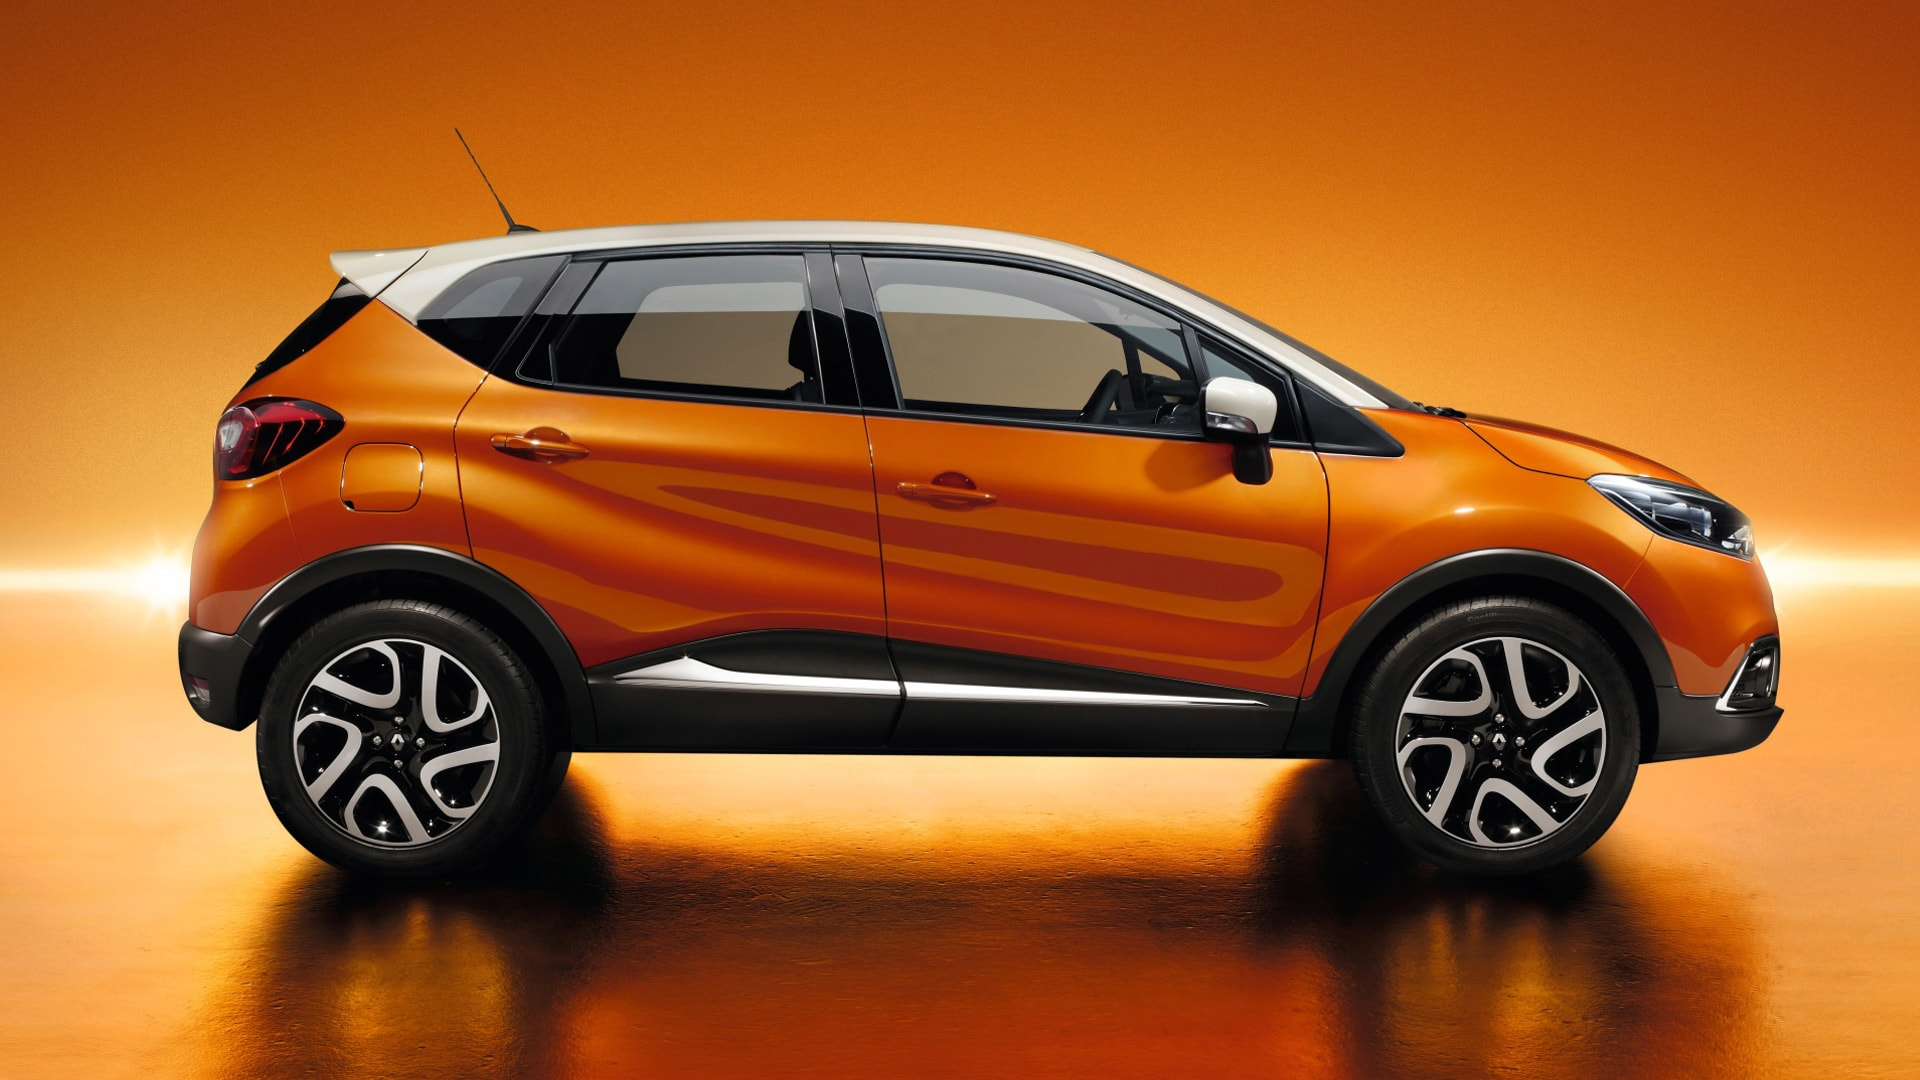 Renault Kaptur Background